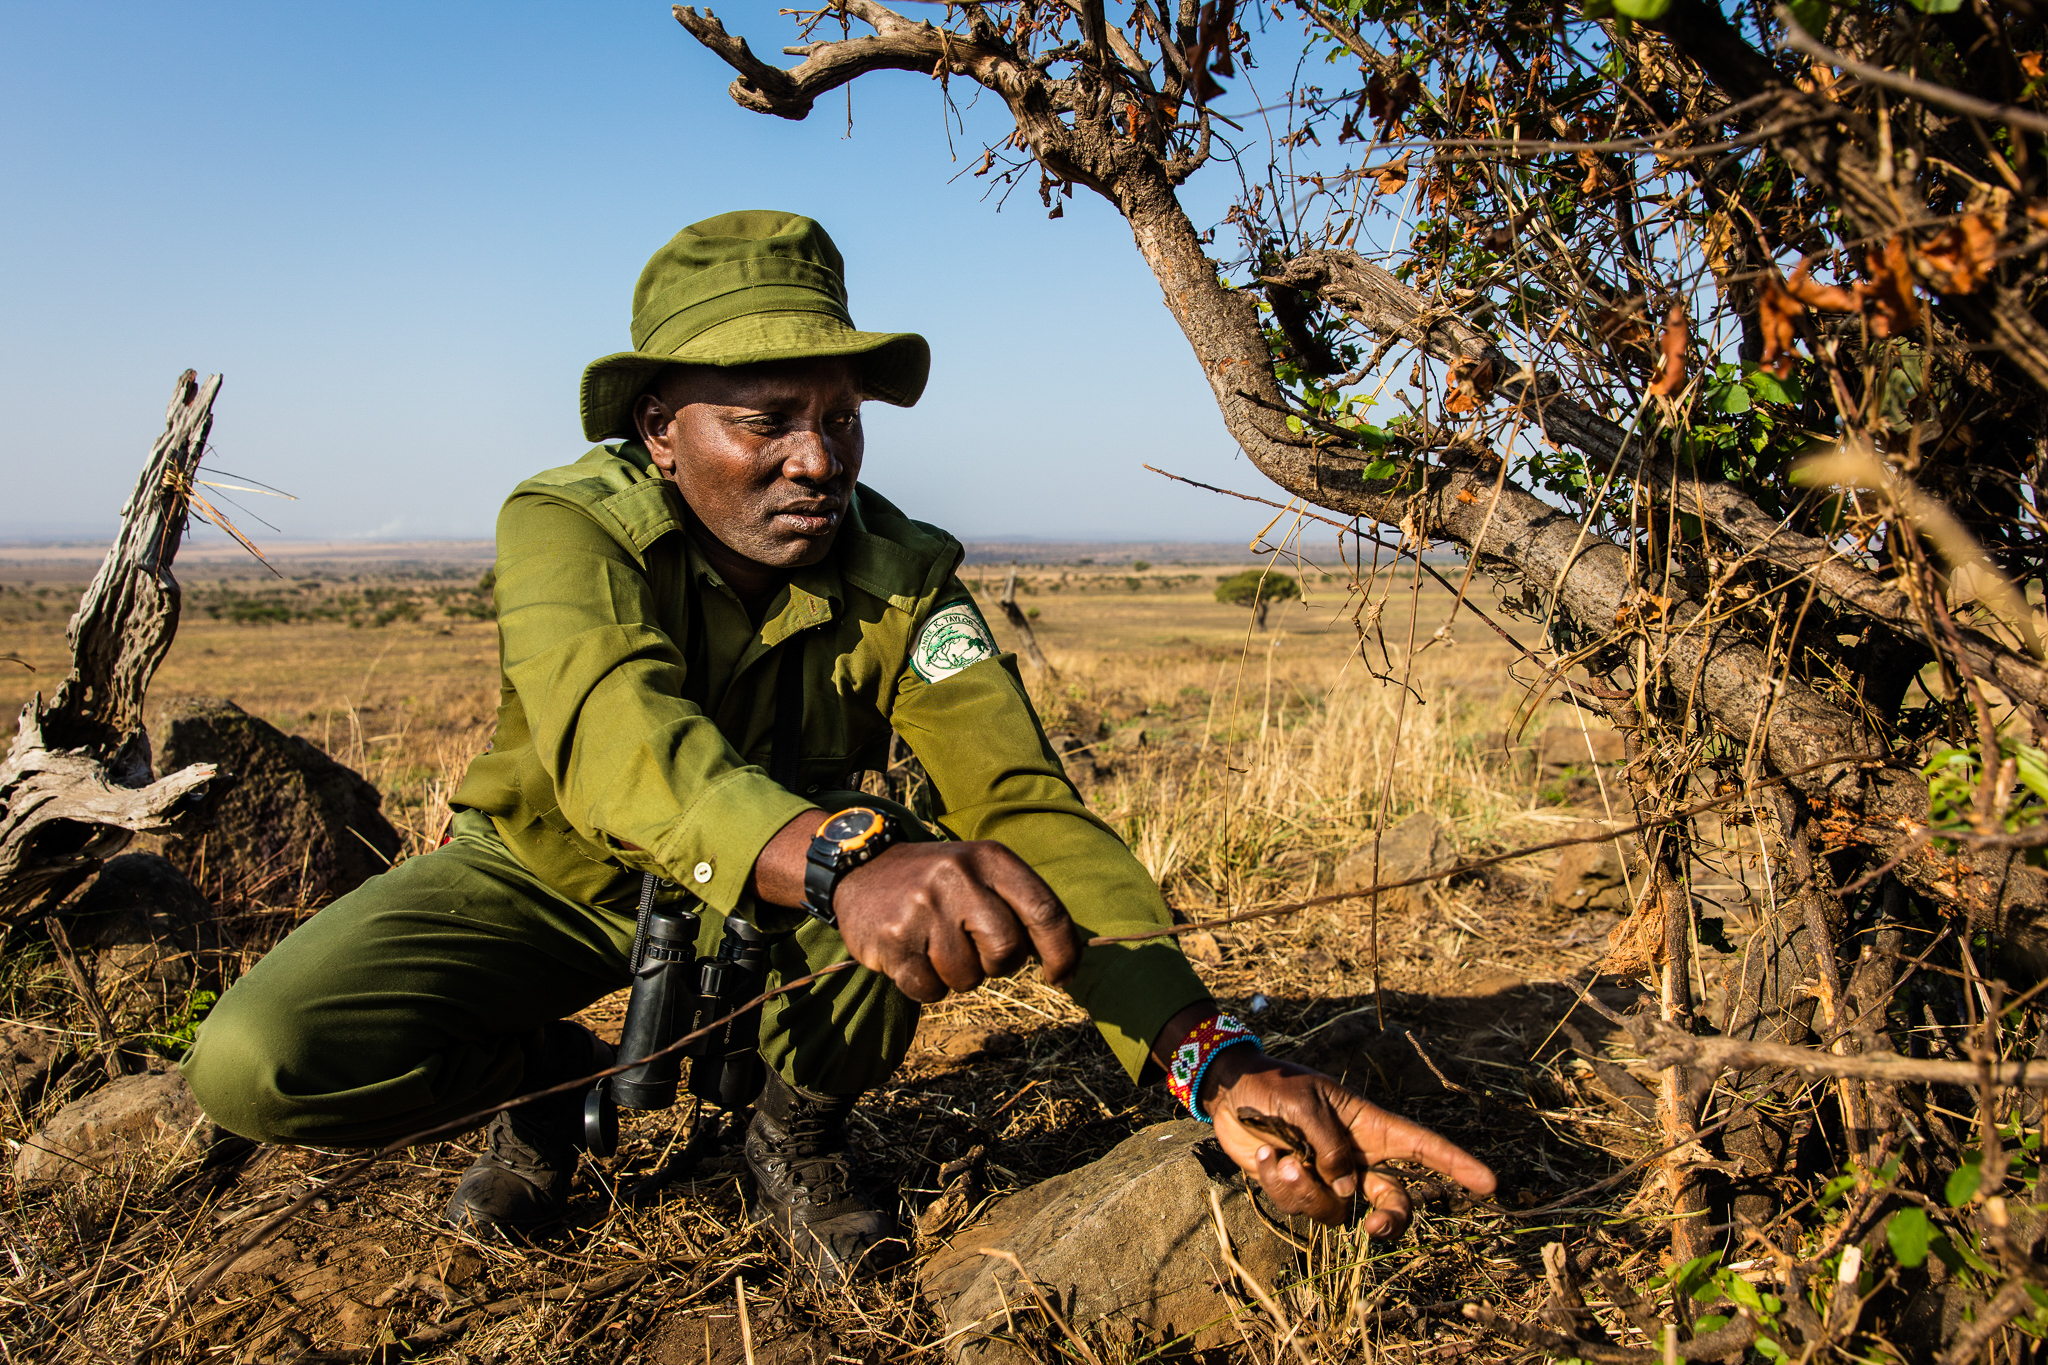 The AKTF team spends much of its time searching for and removing snares from inside the Masai Mara National Reserve. Although the snares are set primarily to catch herbivores they are indiscriminate killers, trapping lions, leopards, and other predators.